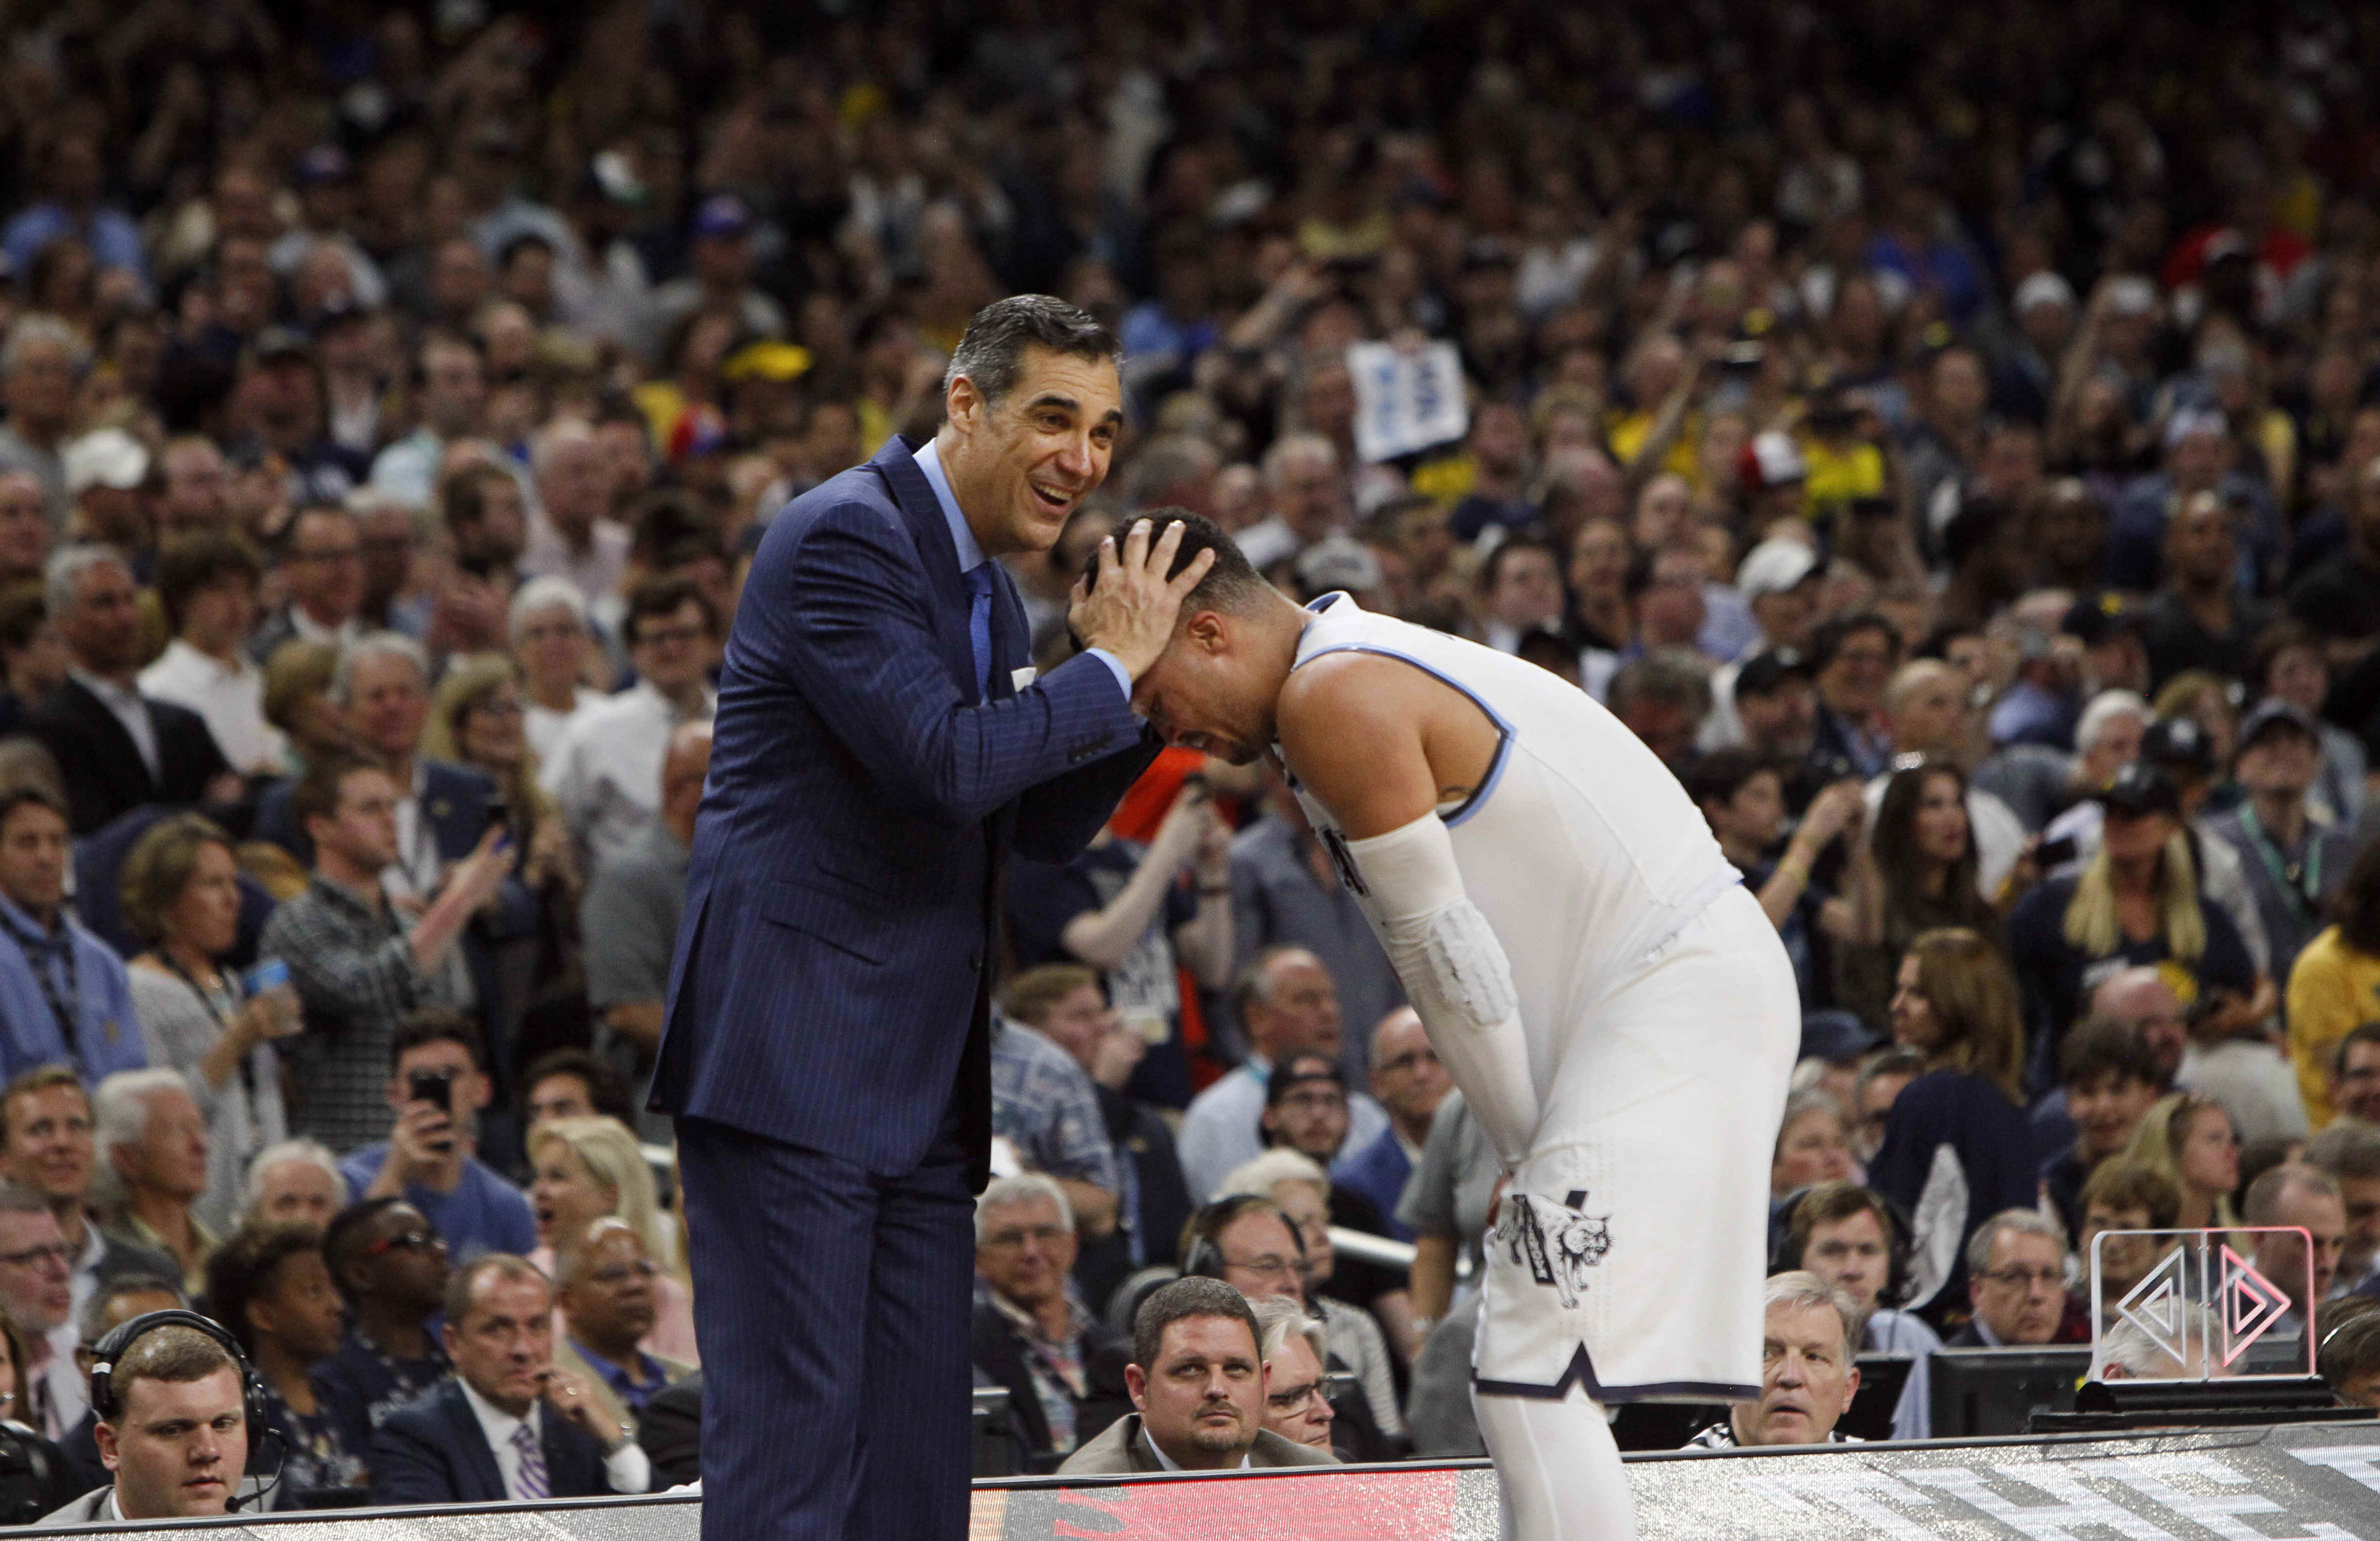 SAN ANTONIO, April 3, 2018  Jay Wright (L), head coach of Villanova, hugs player Jalen Brunson during the championship game against Michigan of the Final Four NCAA college basketball tournament,in San Antonio, Texas, the United States, on April 2, 2018. Villanova claimed the title by defeating Michigan with 79-62.  wll) (Credit Image: © Song Qiong/Xinhua via ZUMA Wire)